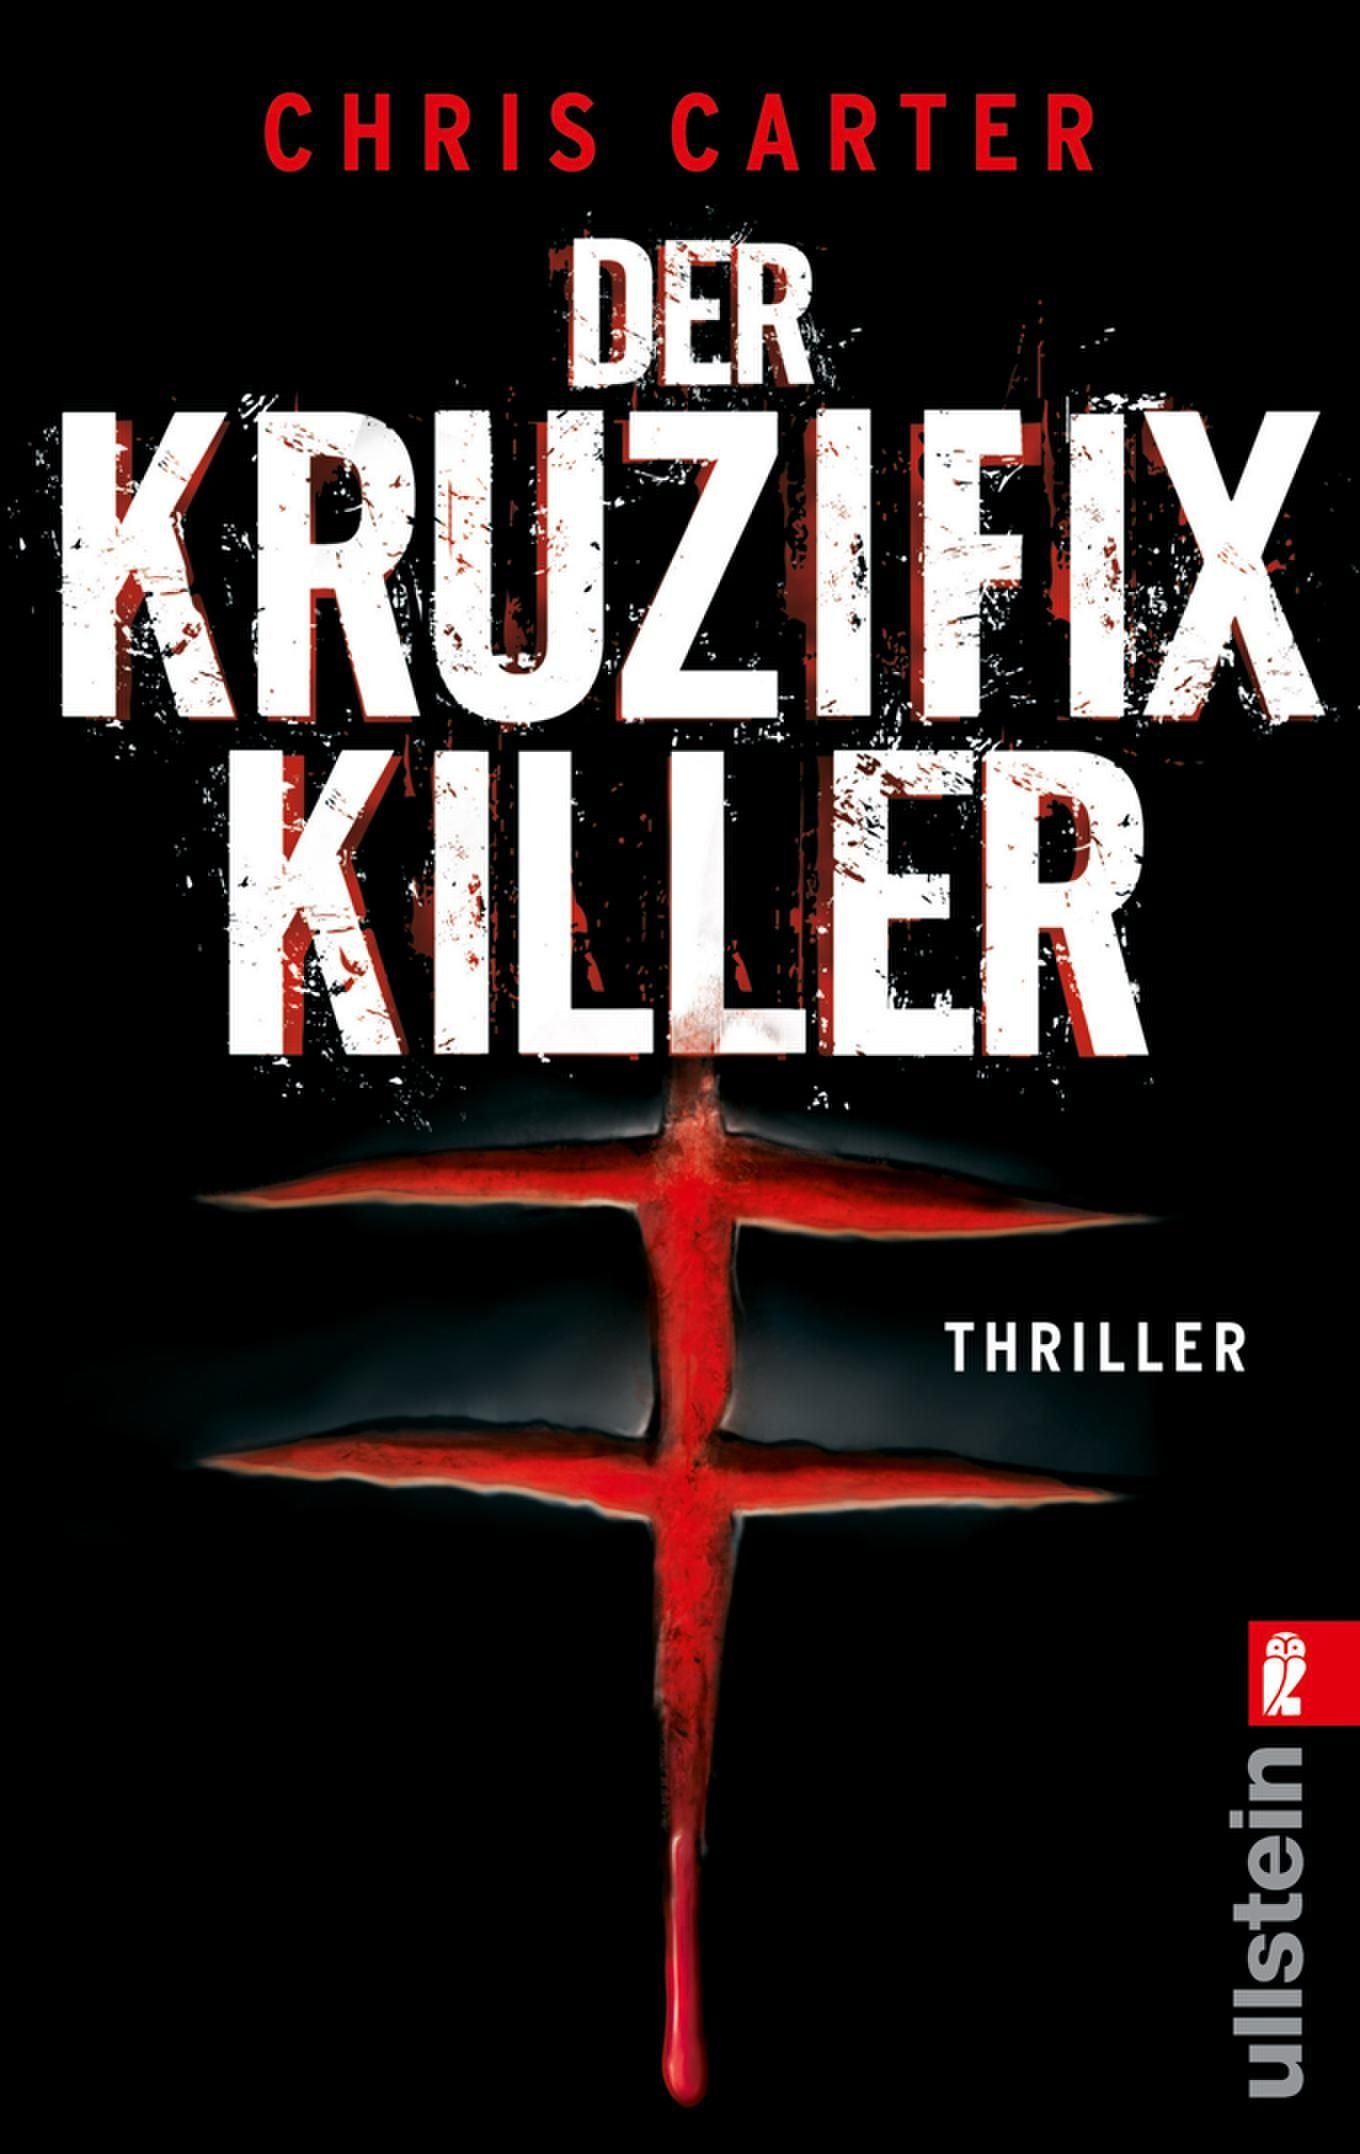 https://juliassammelsurium.blogspot.com/2017/06/rezension-der-kruzifix-killer.html